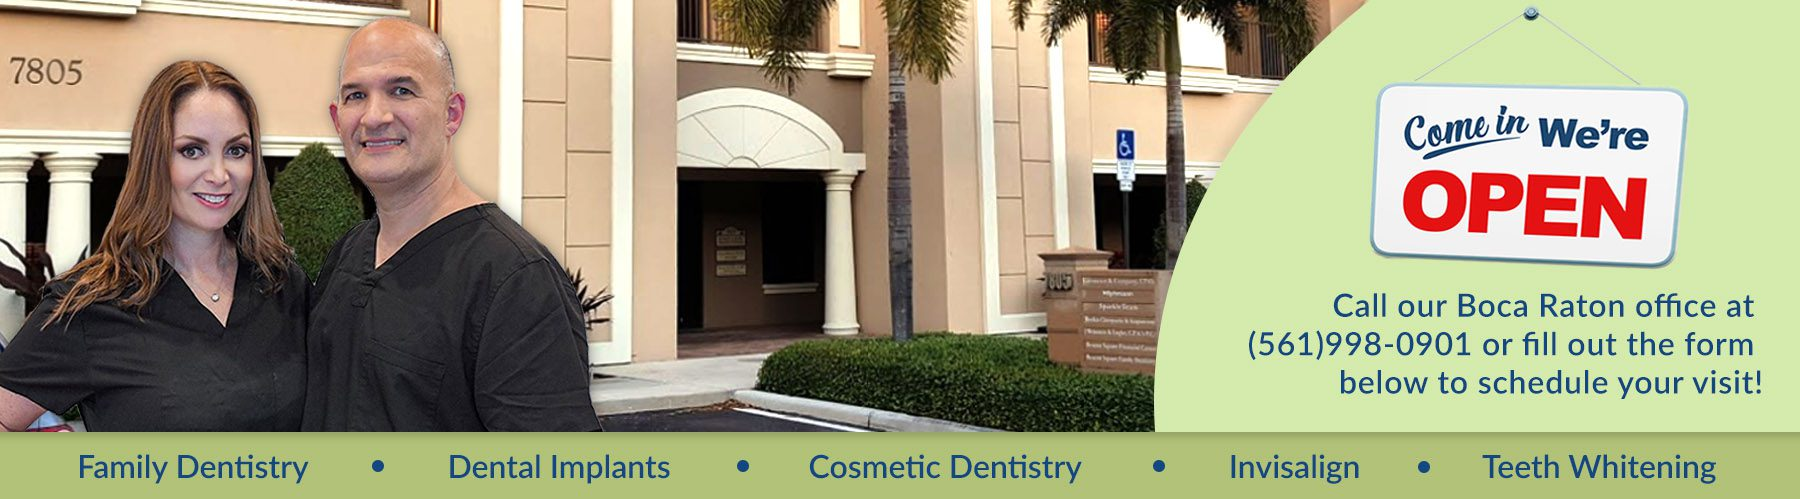 Boca Raton Dentist Office